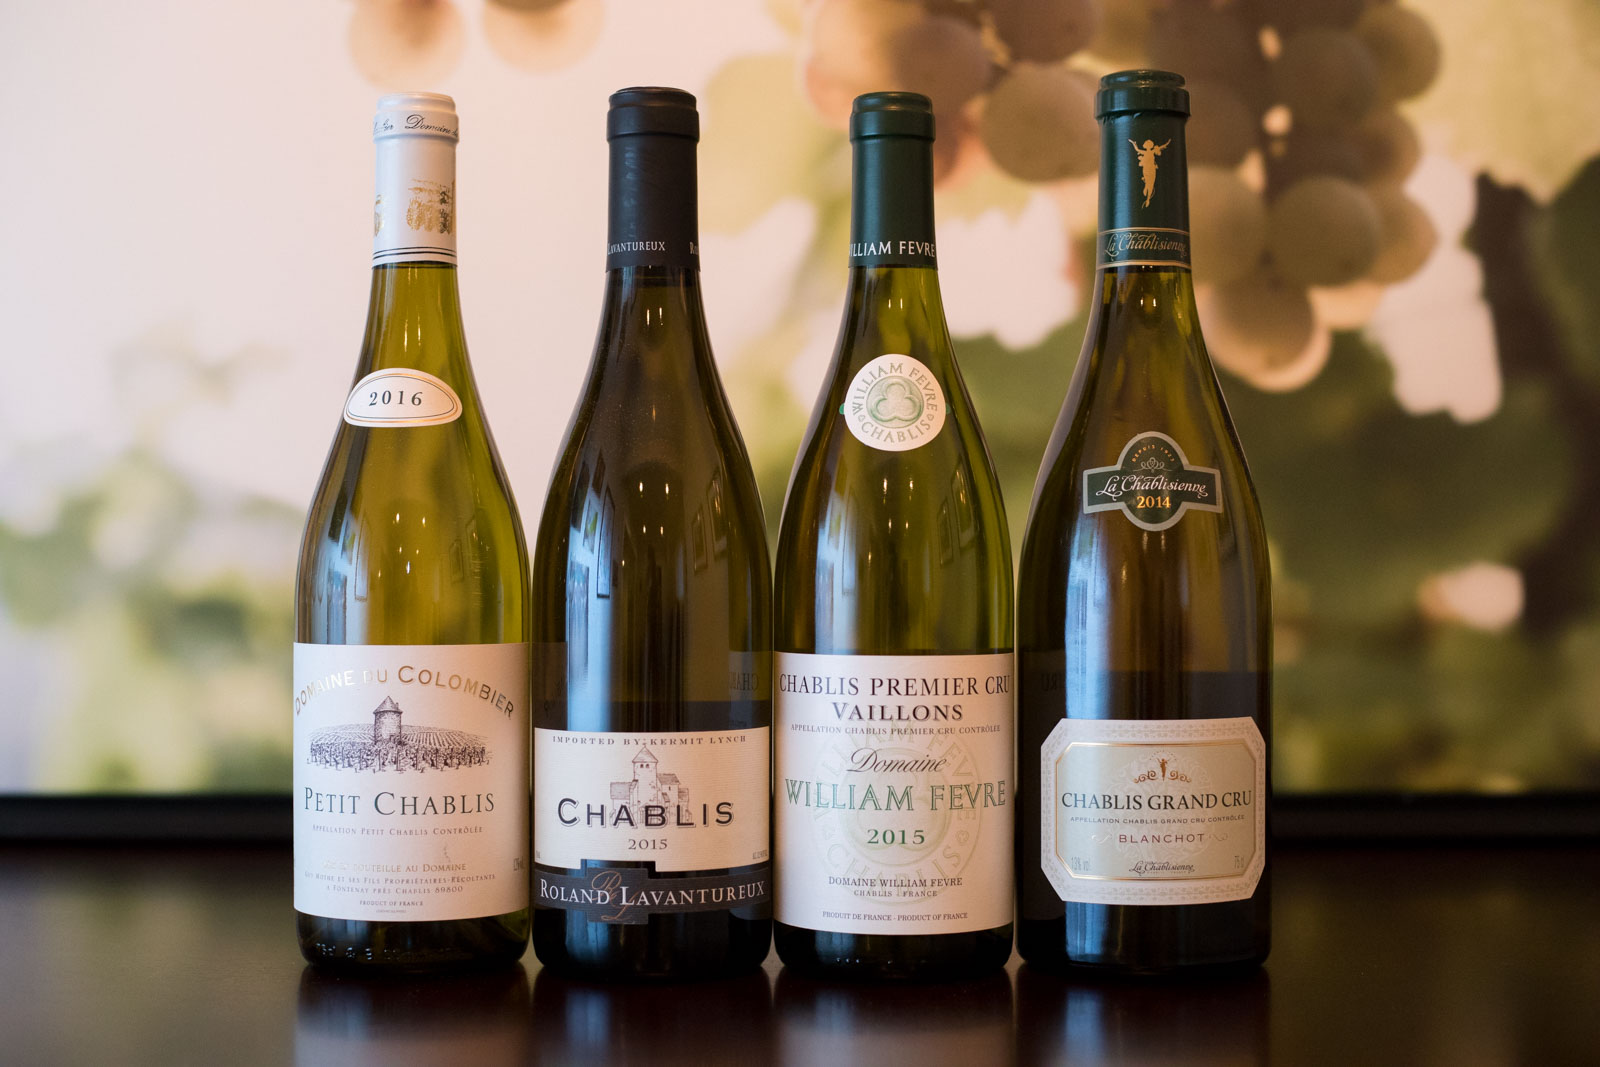 All four versions of Chablis from left to right: Petit Chablis, Chablis, Chablis Premier Cru, Chablis Grand Cru. ©Kevin Day/Opening a Bottle